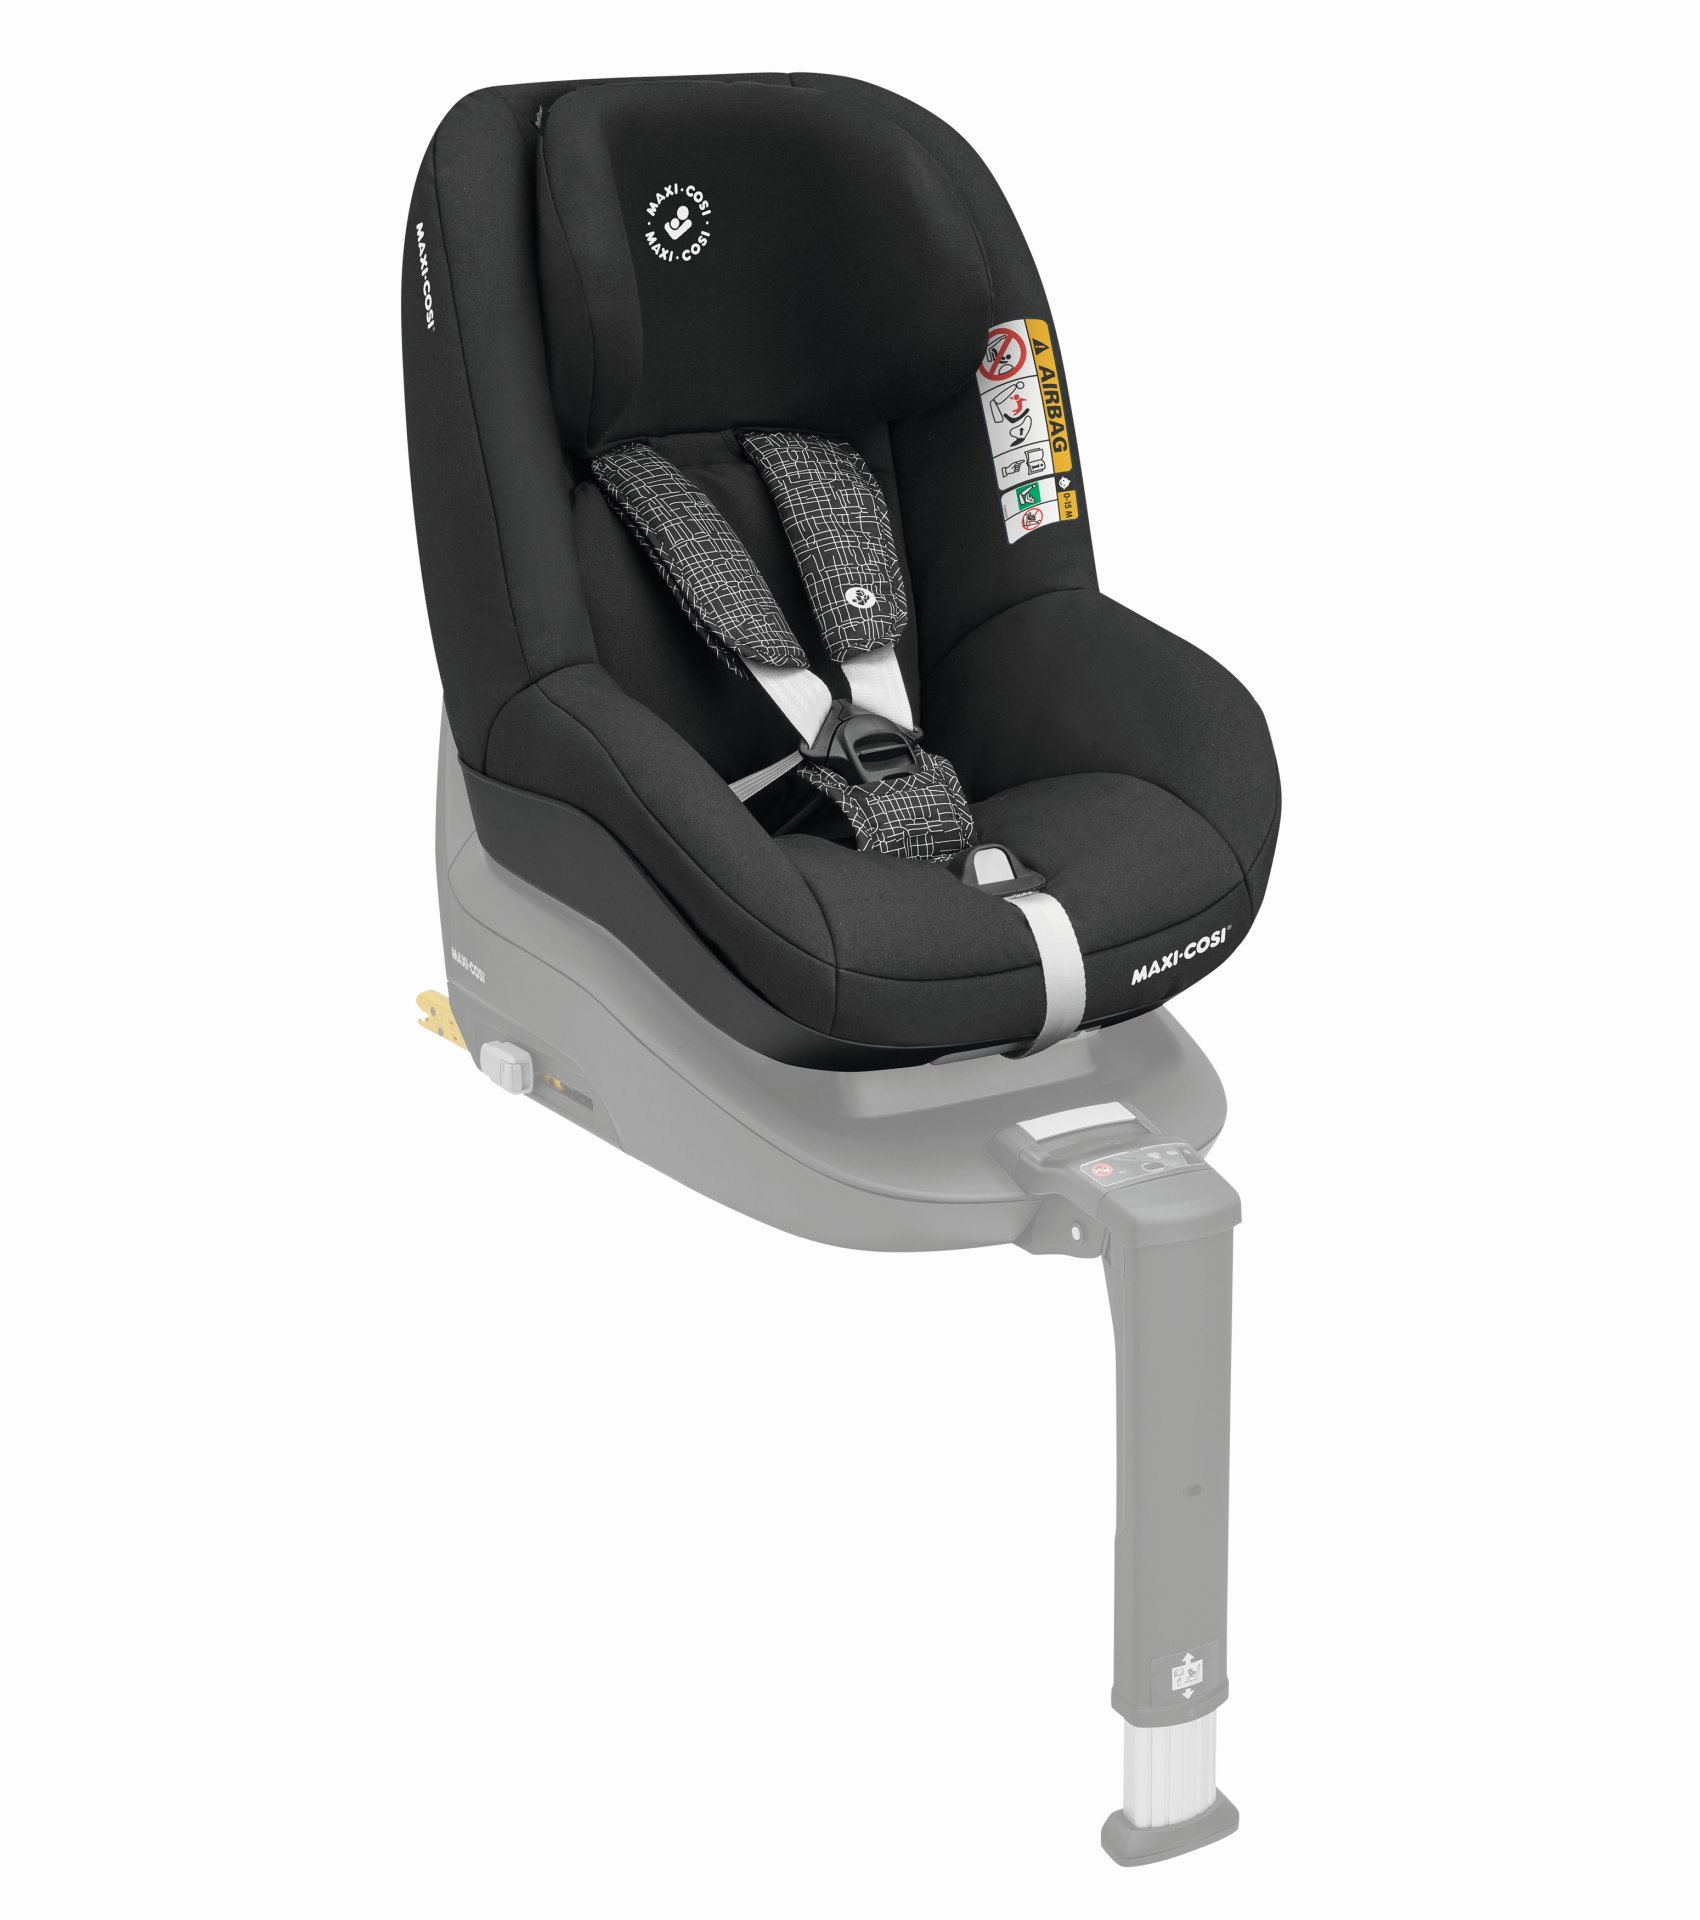 maxi cosi chid car seat pearl smart i size 2019 black grid. Black Bedroom Furniture Sets. Home Design Ideas